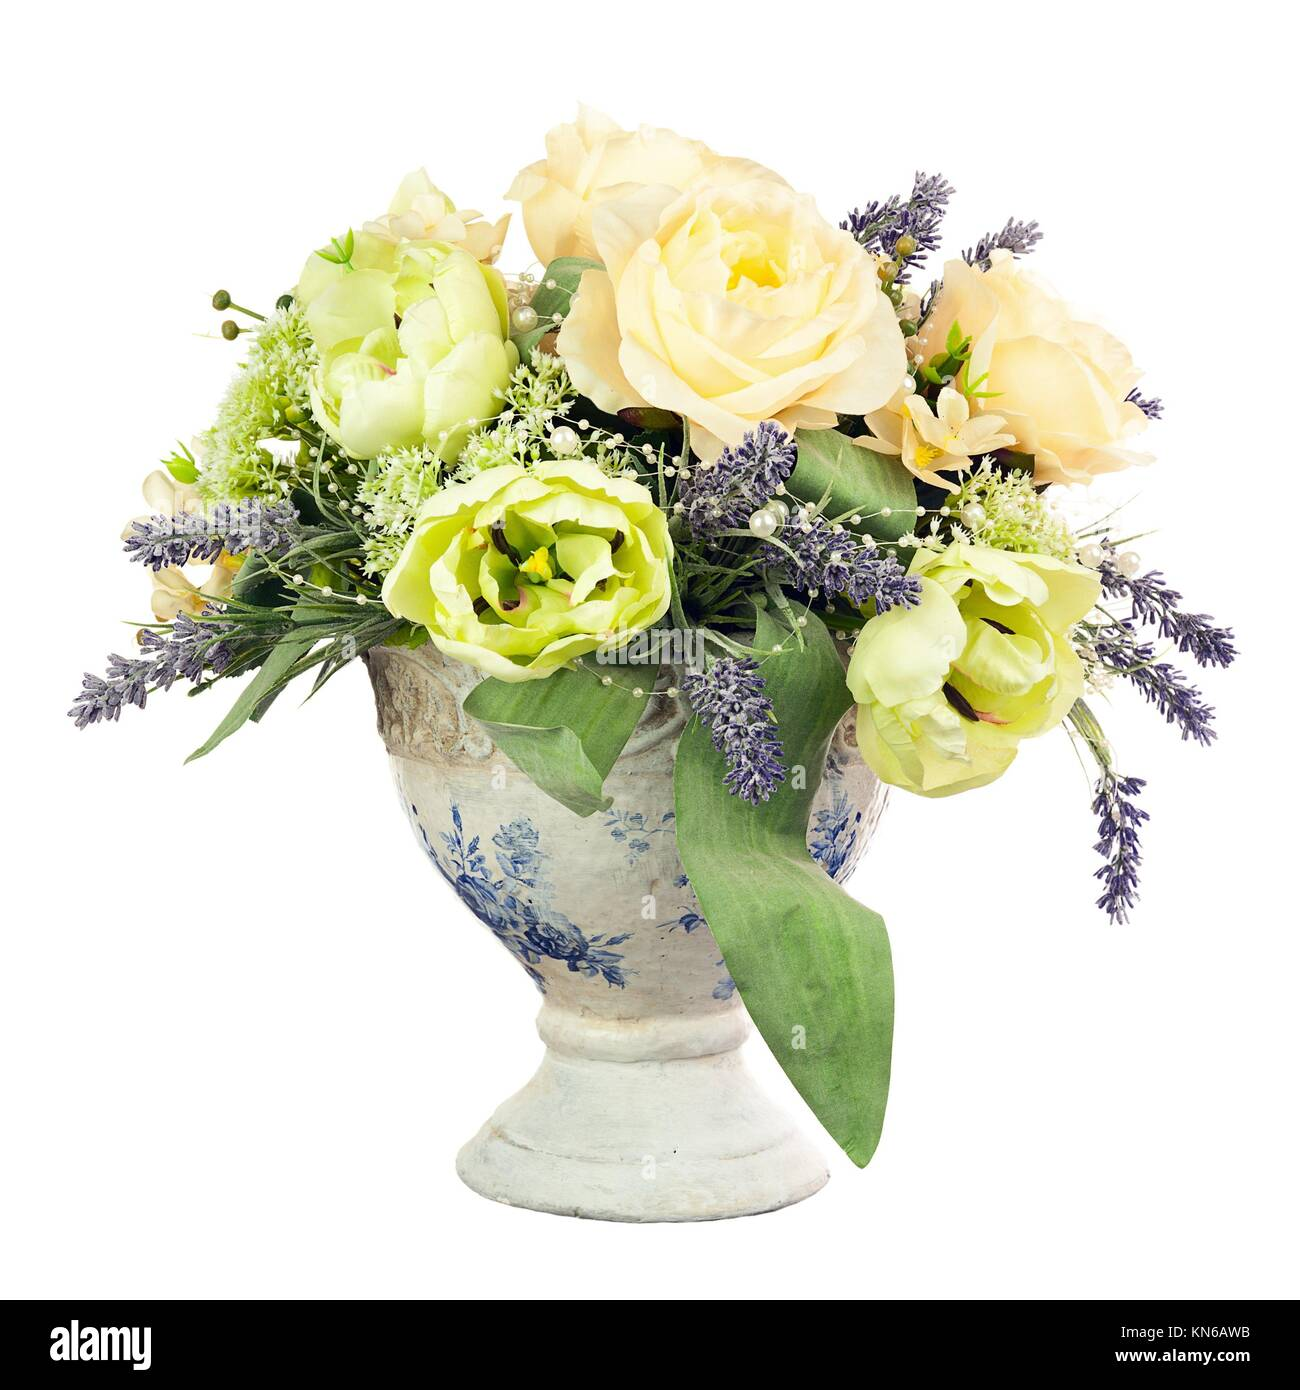 Bouquet from artificial flowers arrangement centerpiece in old vase isolated on white background. Stock Photo